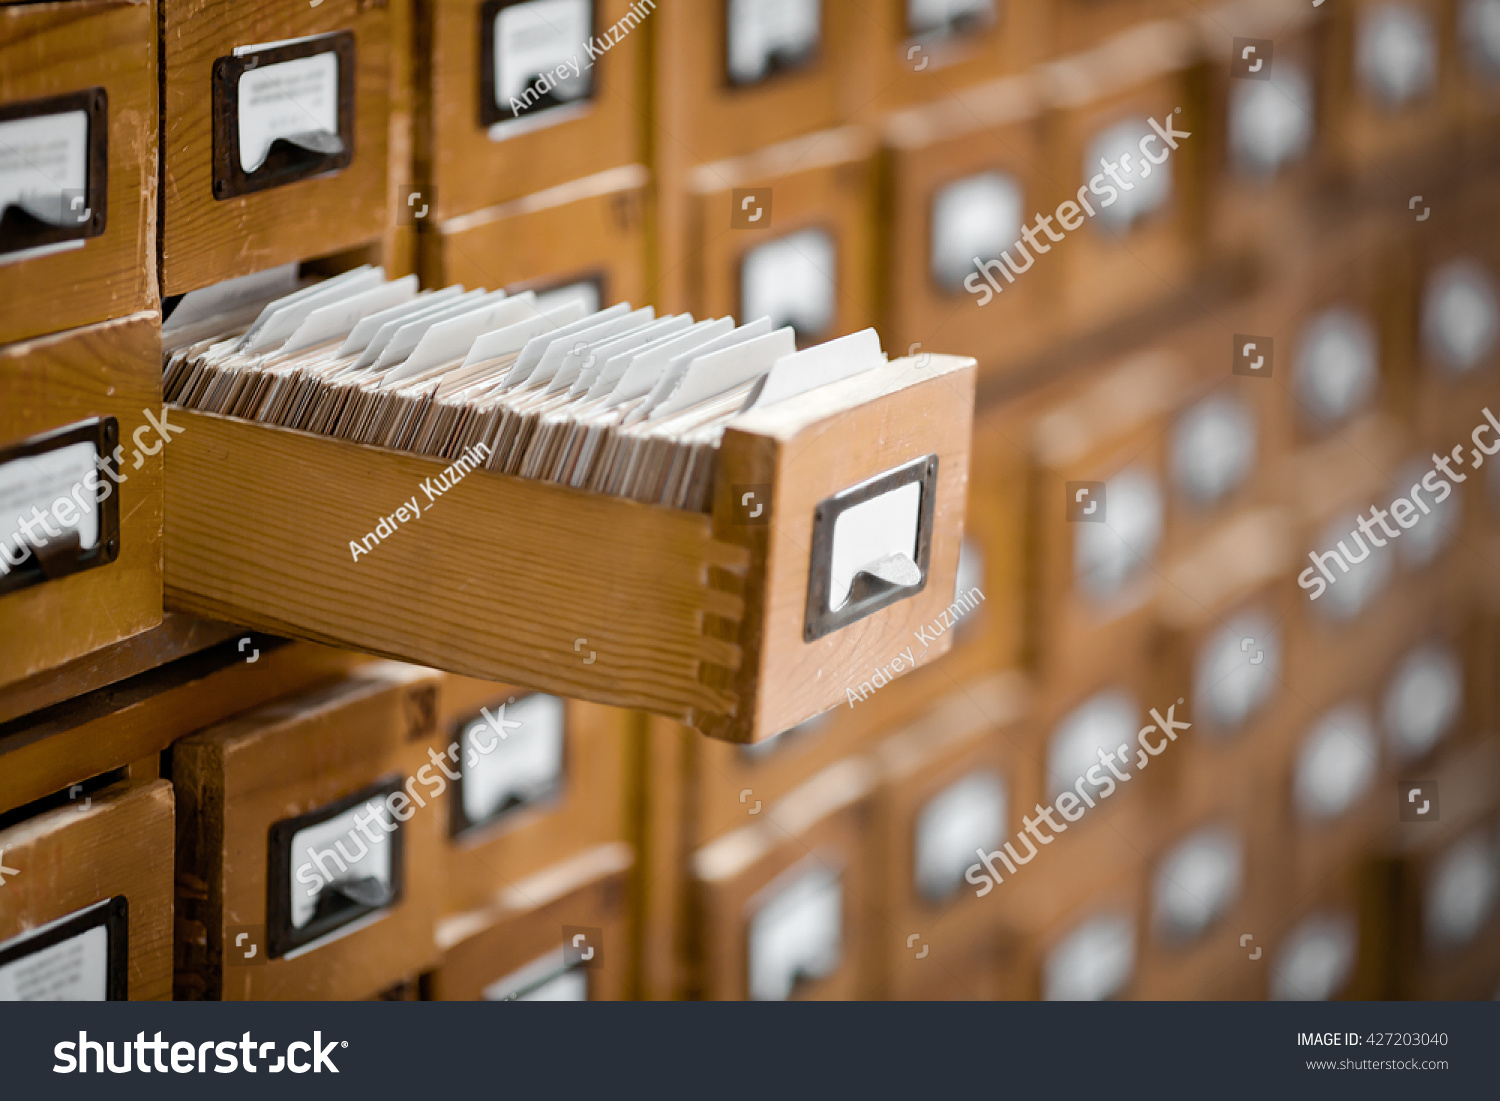 library or archive reference card catalog database knowledge